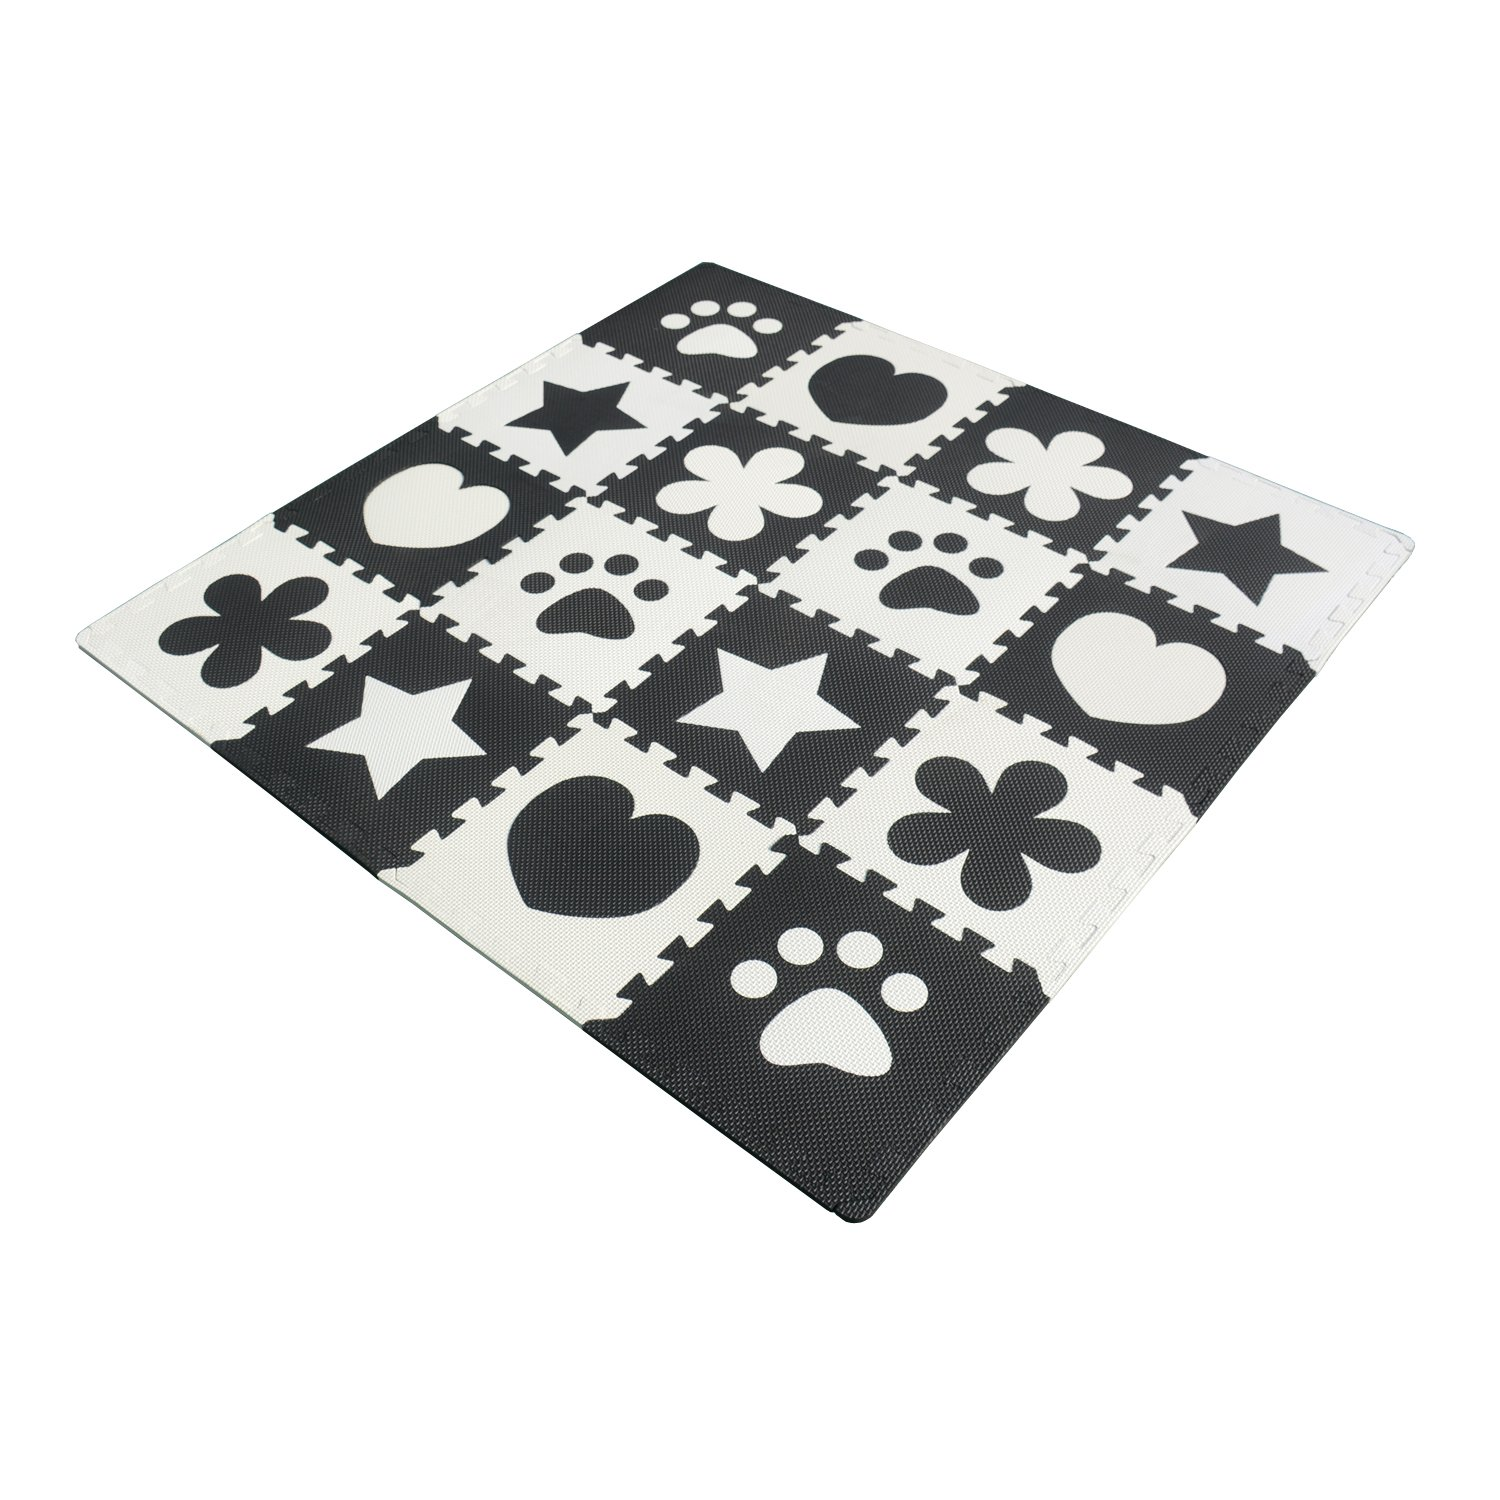 Menu Life 10pcs Black and White Children Kids Baby Soft EVA Foam Activity Play Mat Playroom Floor Tiles Pop-out Jigsaw Puzzle Mat (Black and White Multi) Bai Ling Black&White